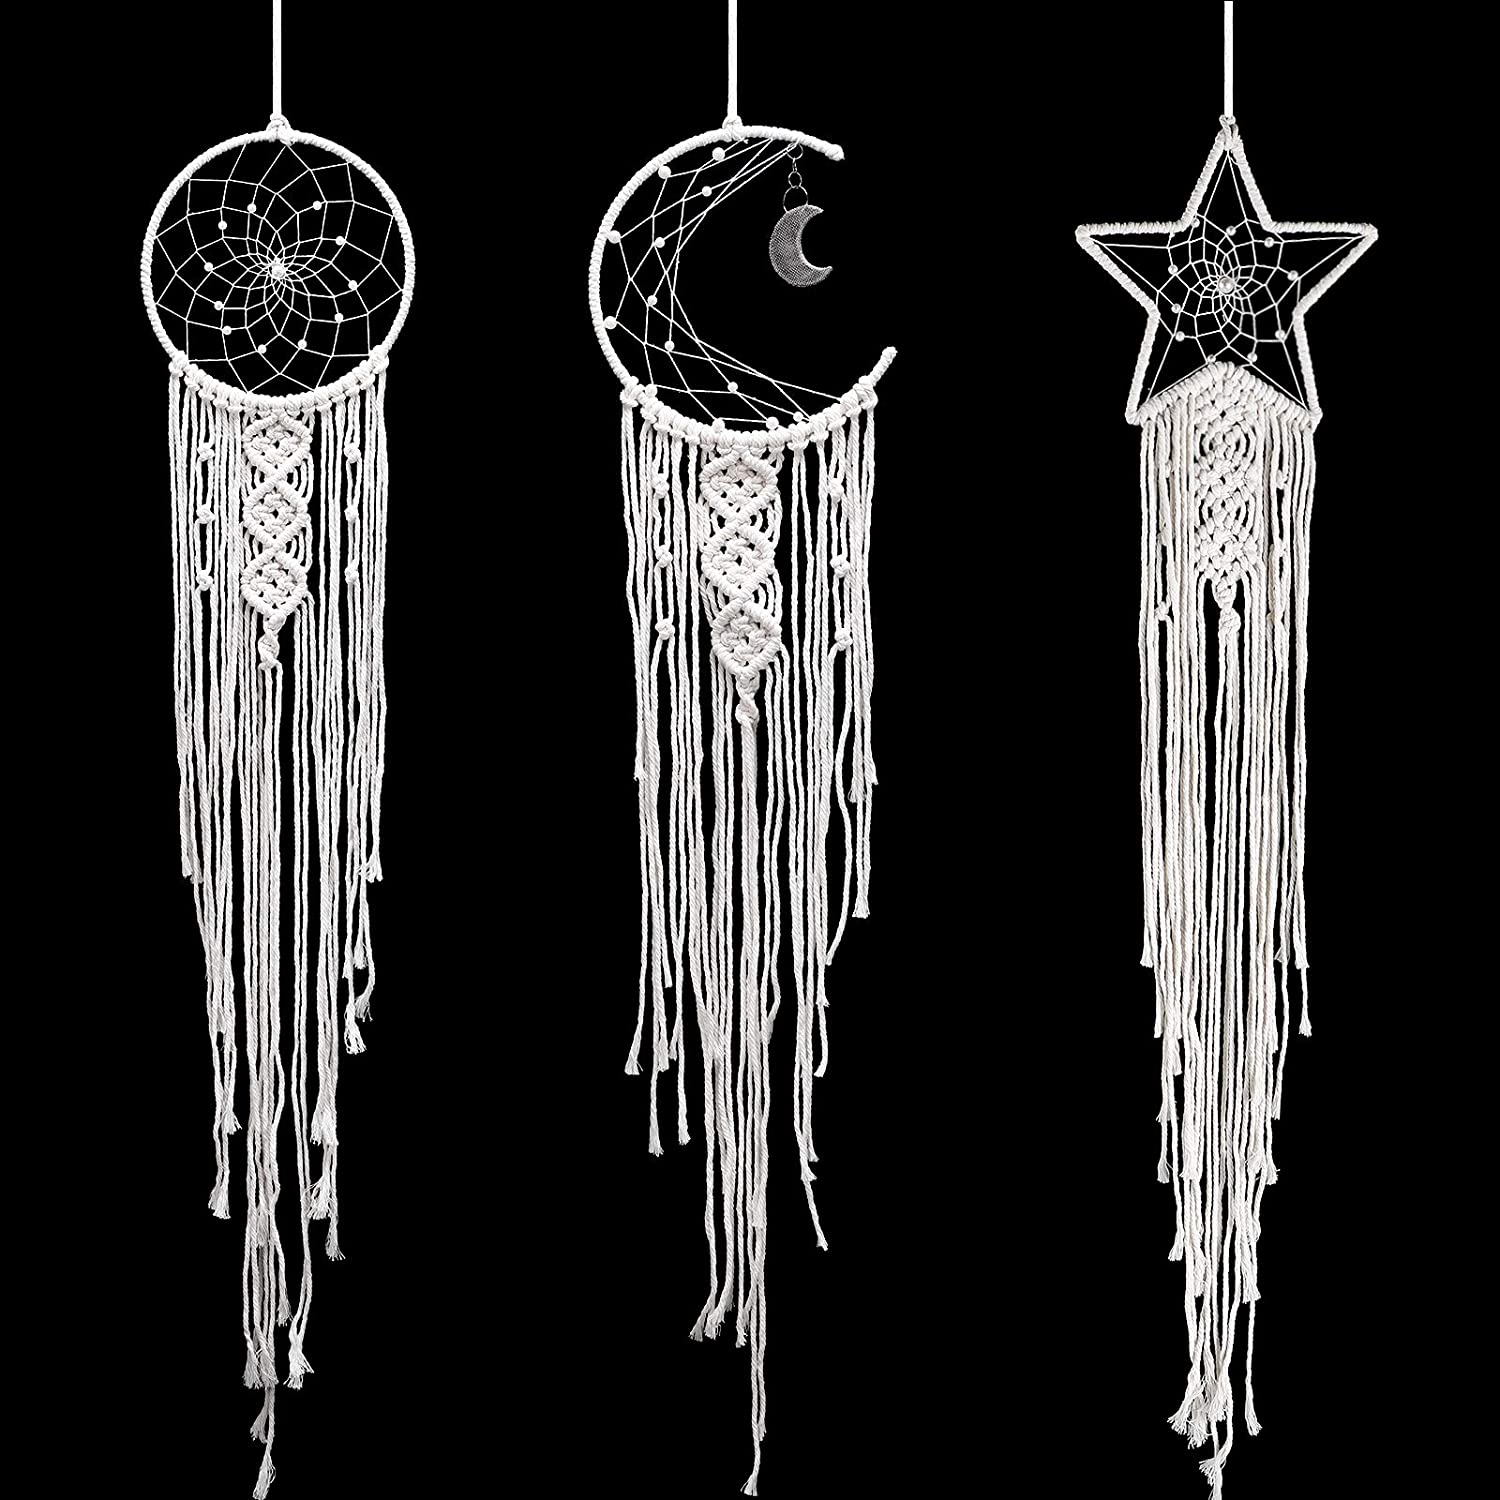 Jetec 3 Pieces Dream Catcher Moon Sun Star Design Handmade Bohemian White Macrame Wall Hanging for Wall Hanging Home Decoration